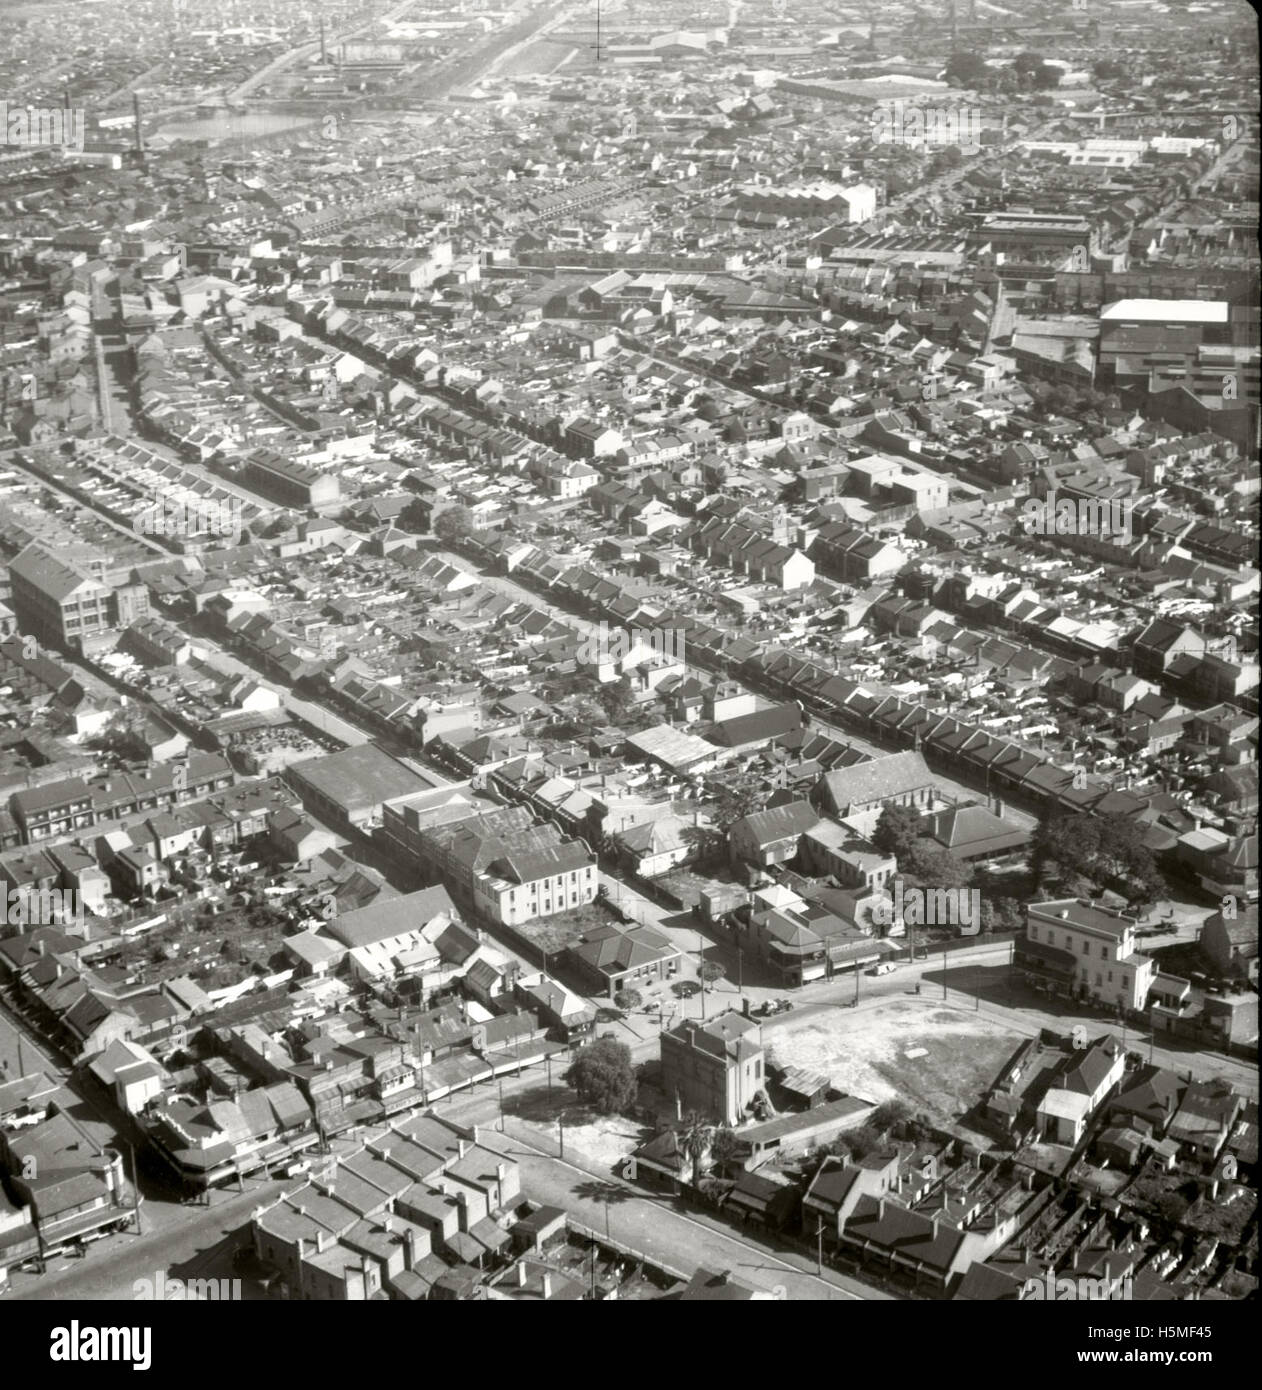 Erskineville & Environs  - 25 Aug 1937 - Stock Image